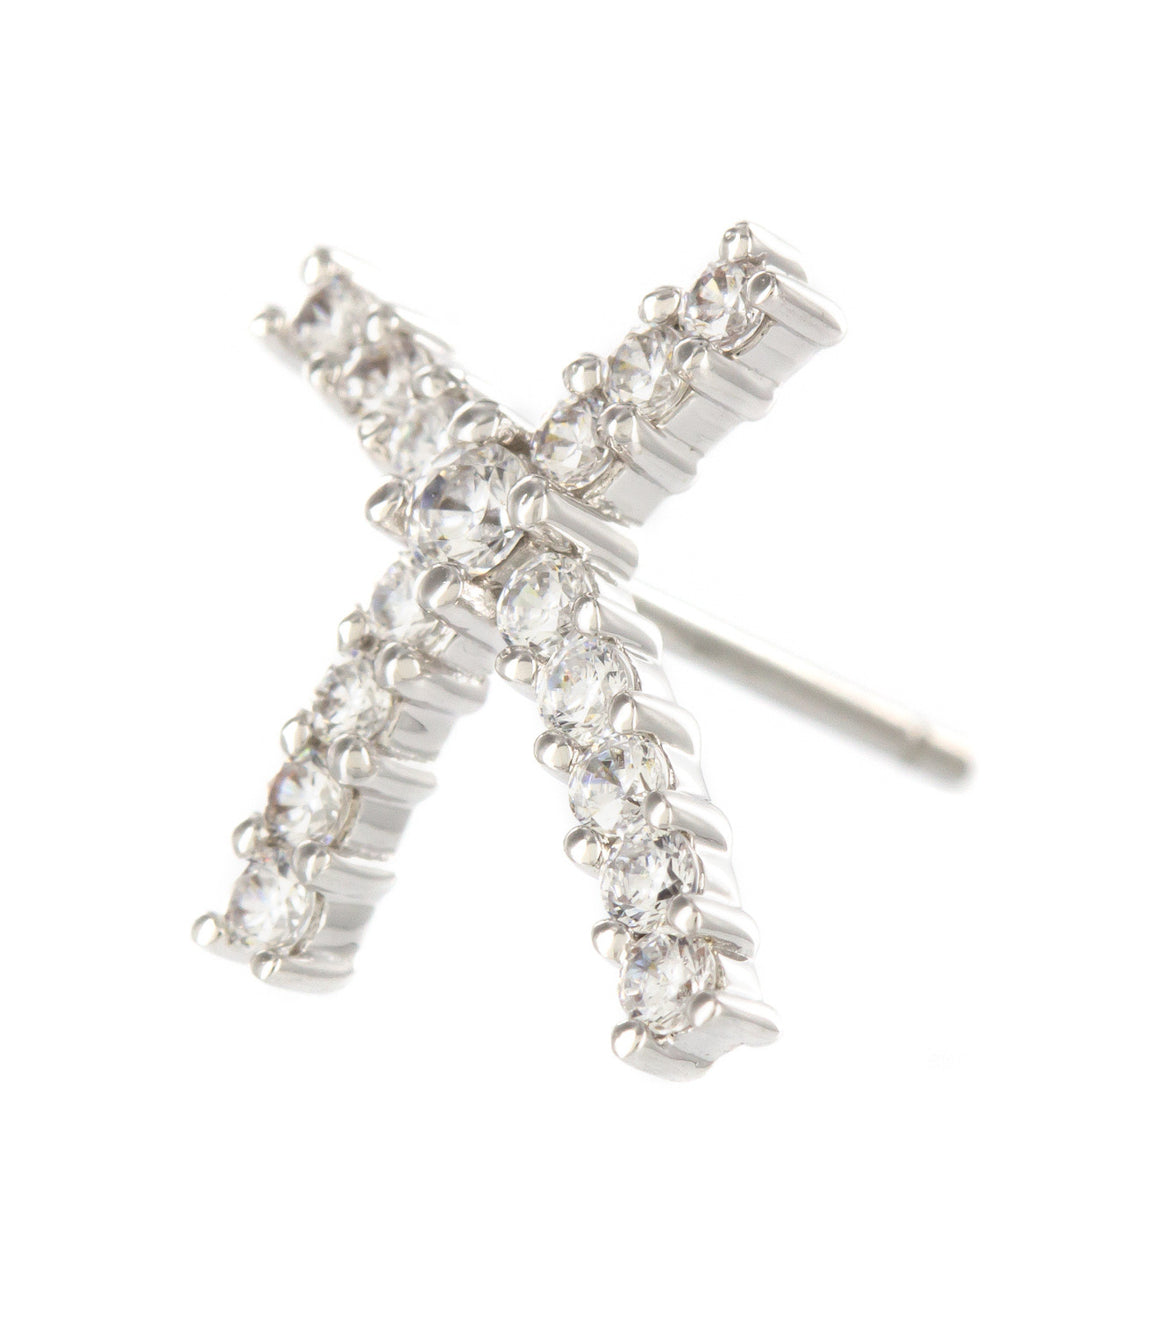 XO kiss cubic zirconia Stud Earrings.